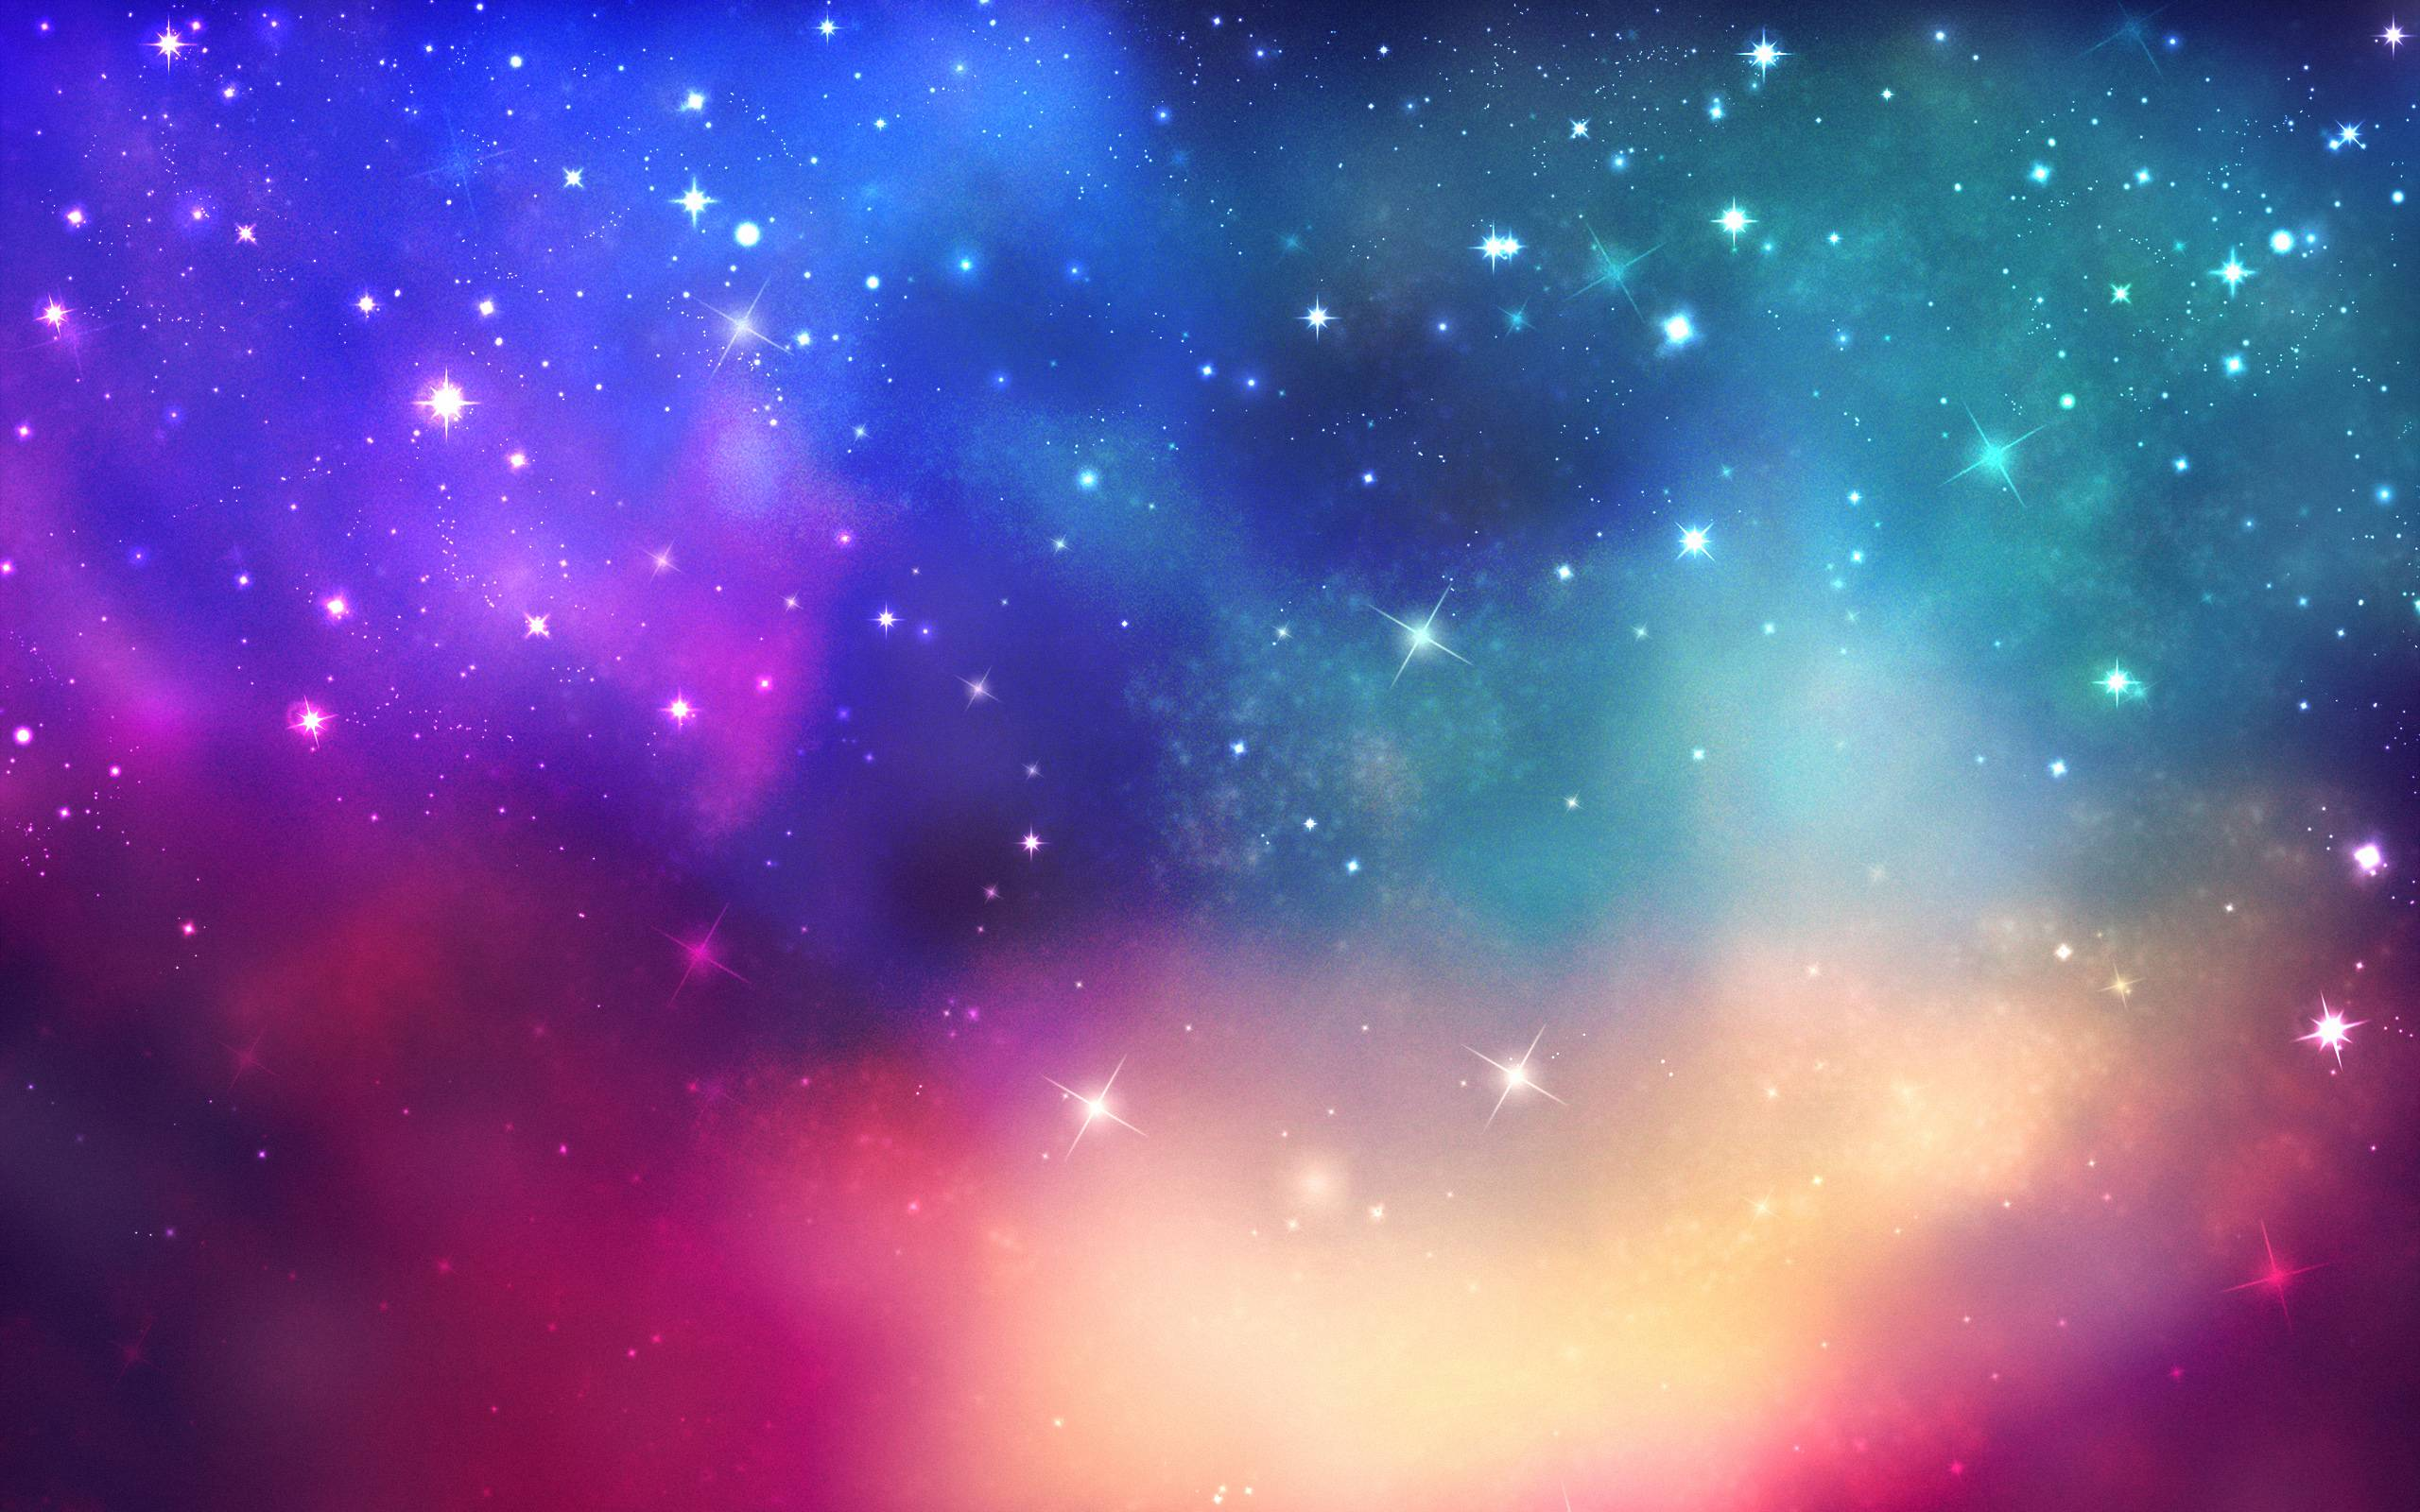 Outer Space Stars Wallpapers Hd Backgrounds 1 HD Wallpapers